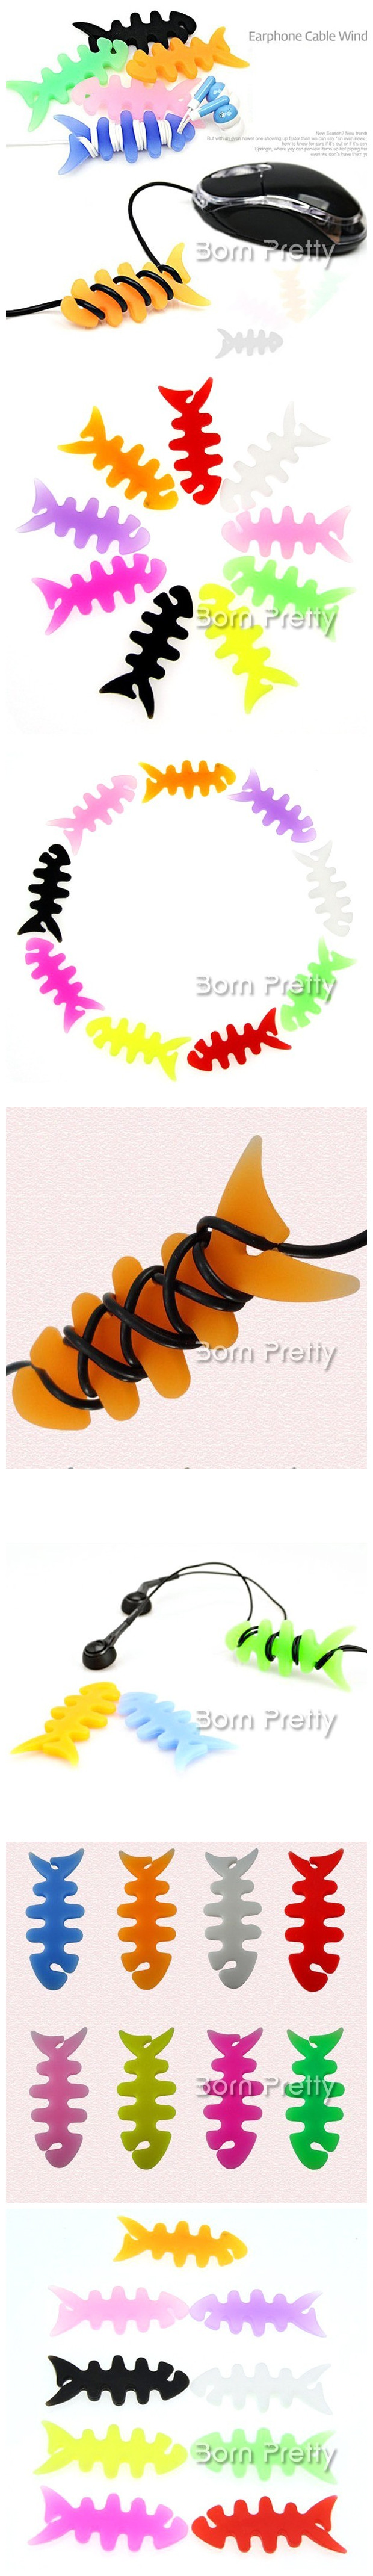 I find an excellent product on @BornPrettyStore, 1pc Fish Bone Earphone Cable Winder 9 Colours... at $0.99. http://www.bornprettystore.com/-p-3867.html